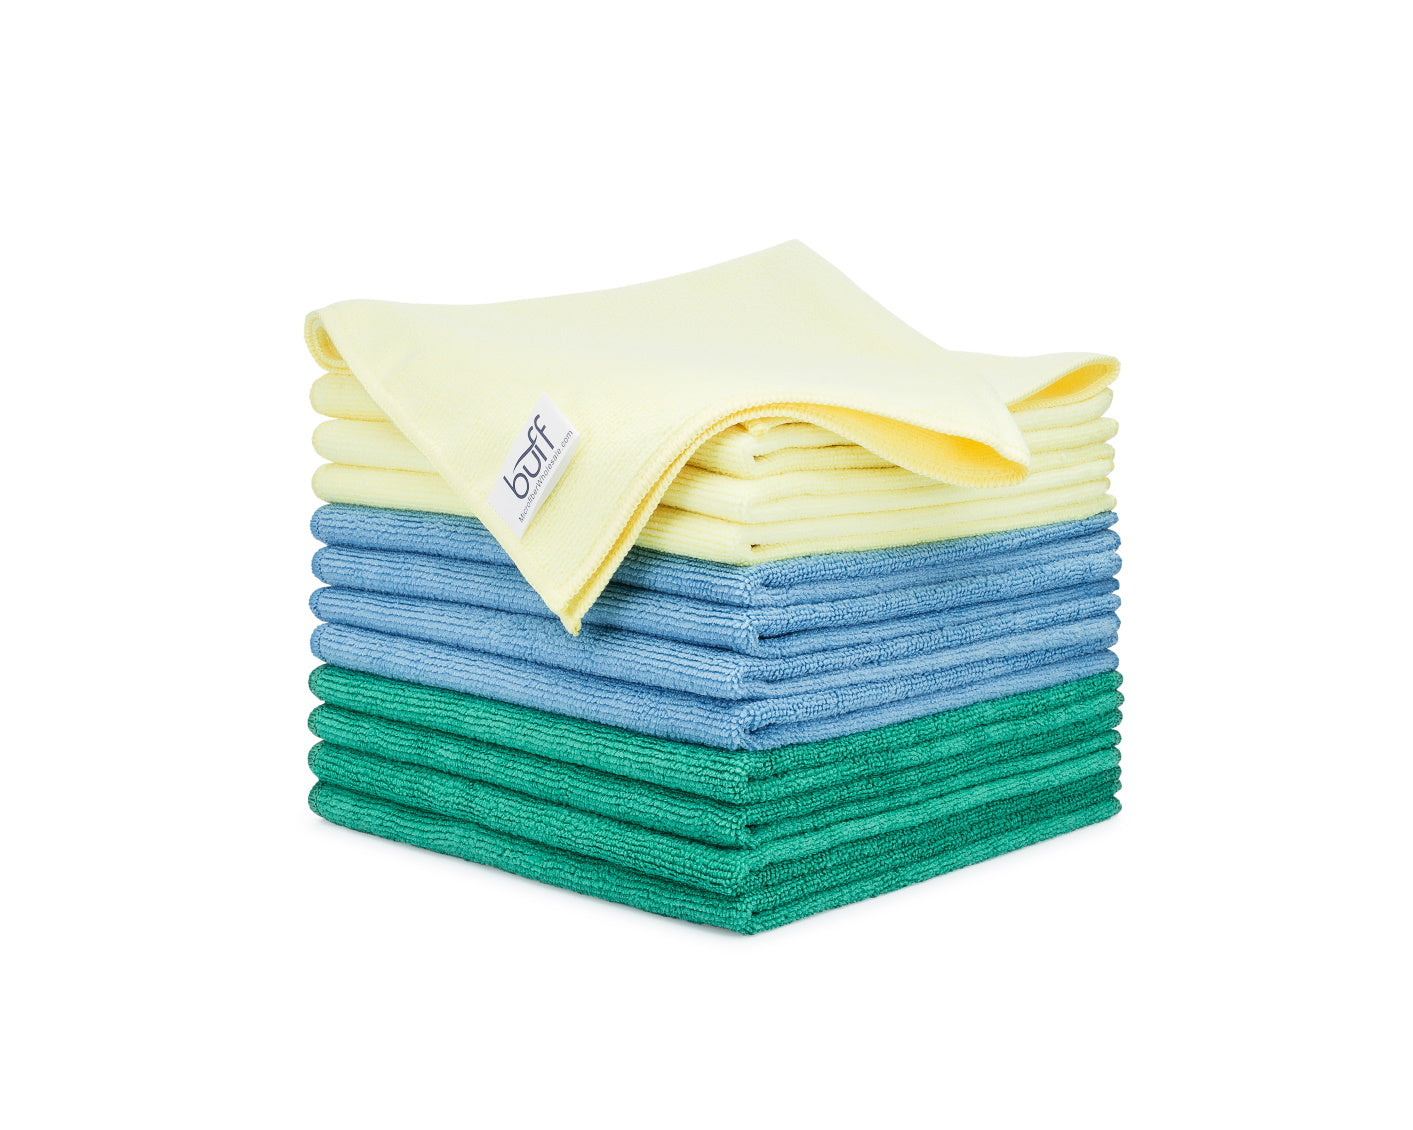 12 Pack, Green Polyte Premium Microfiber Cleaning Cloth 12 x 12 in,